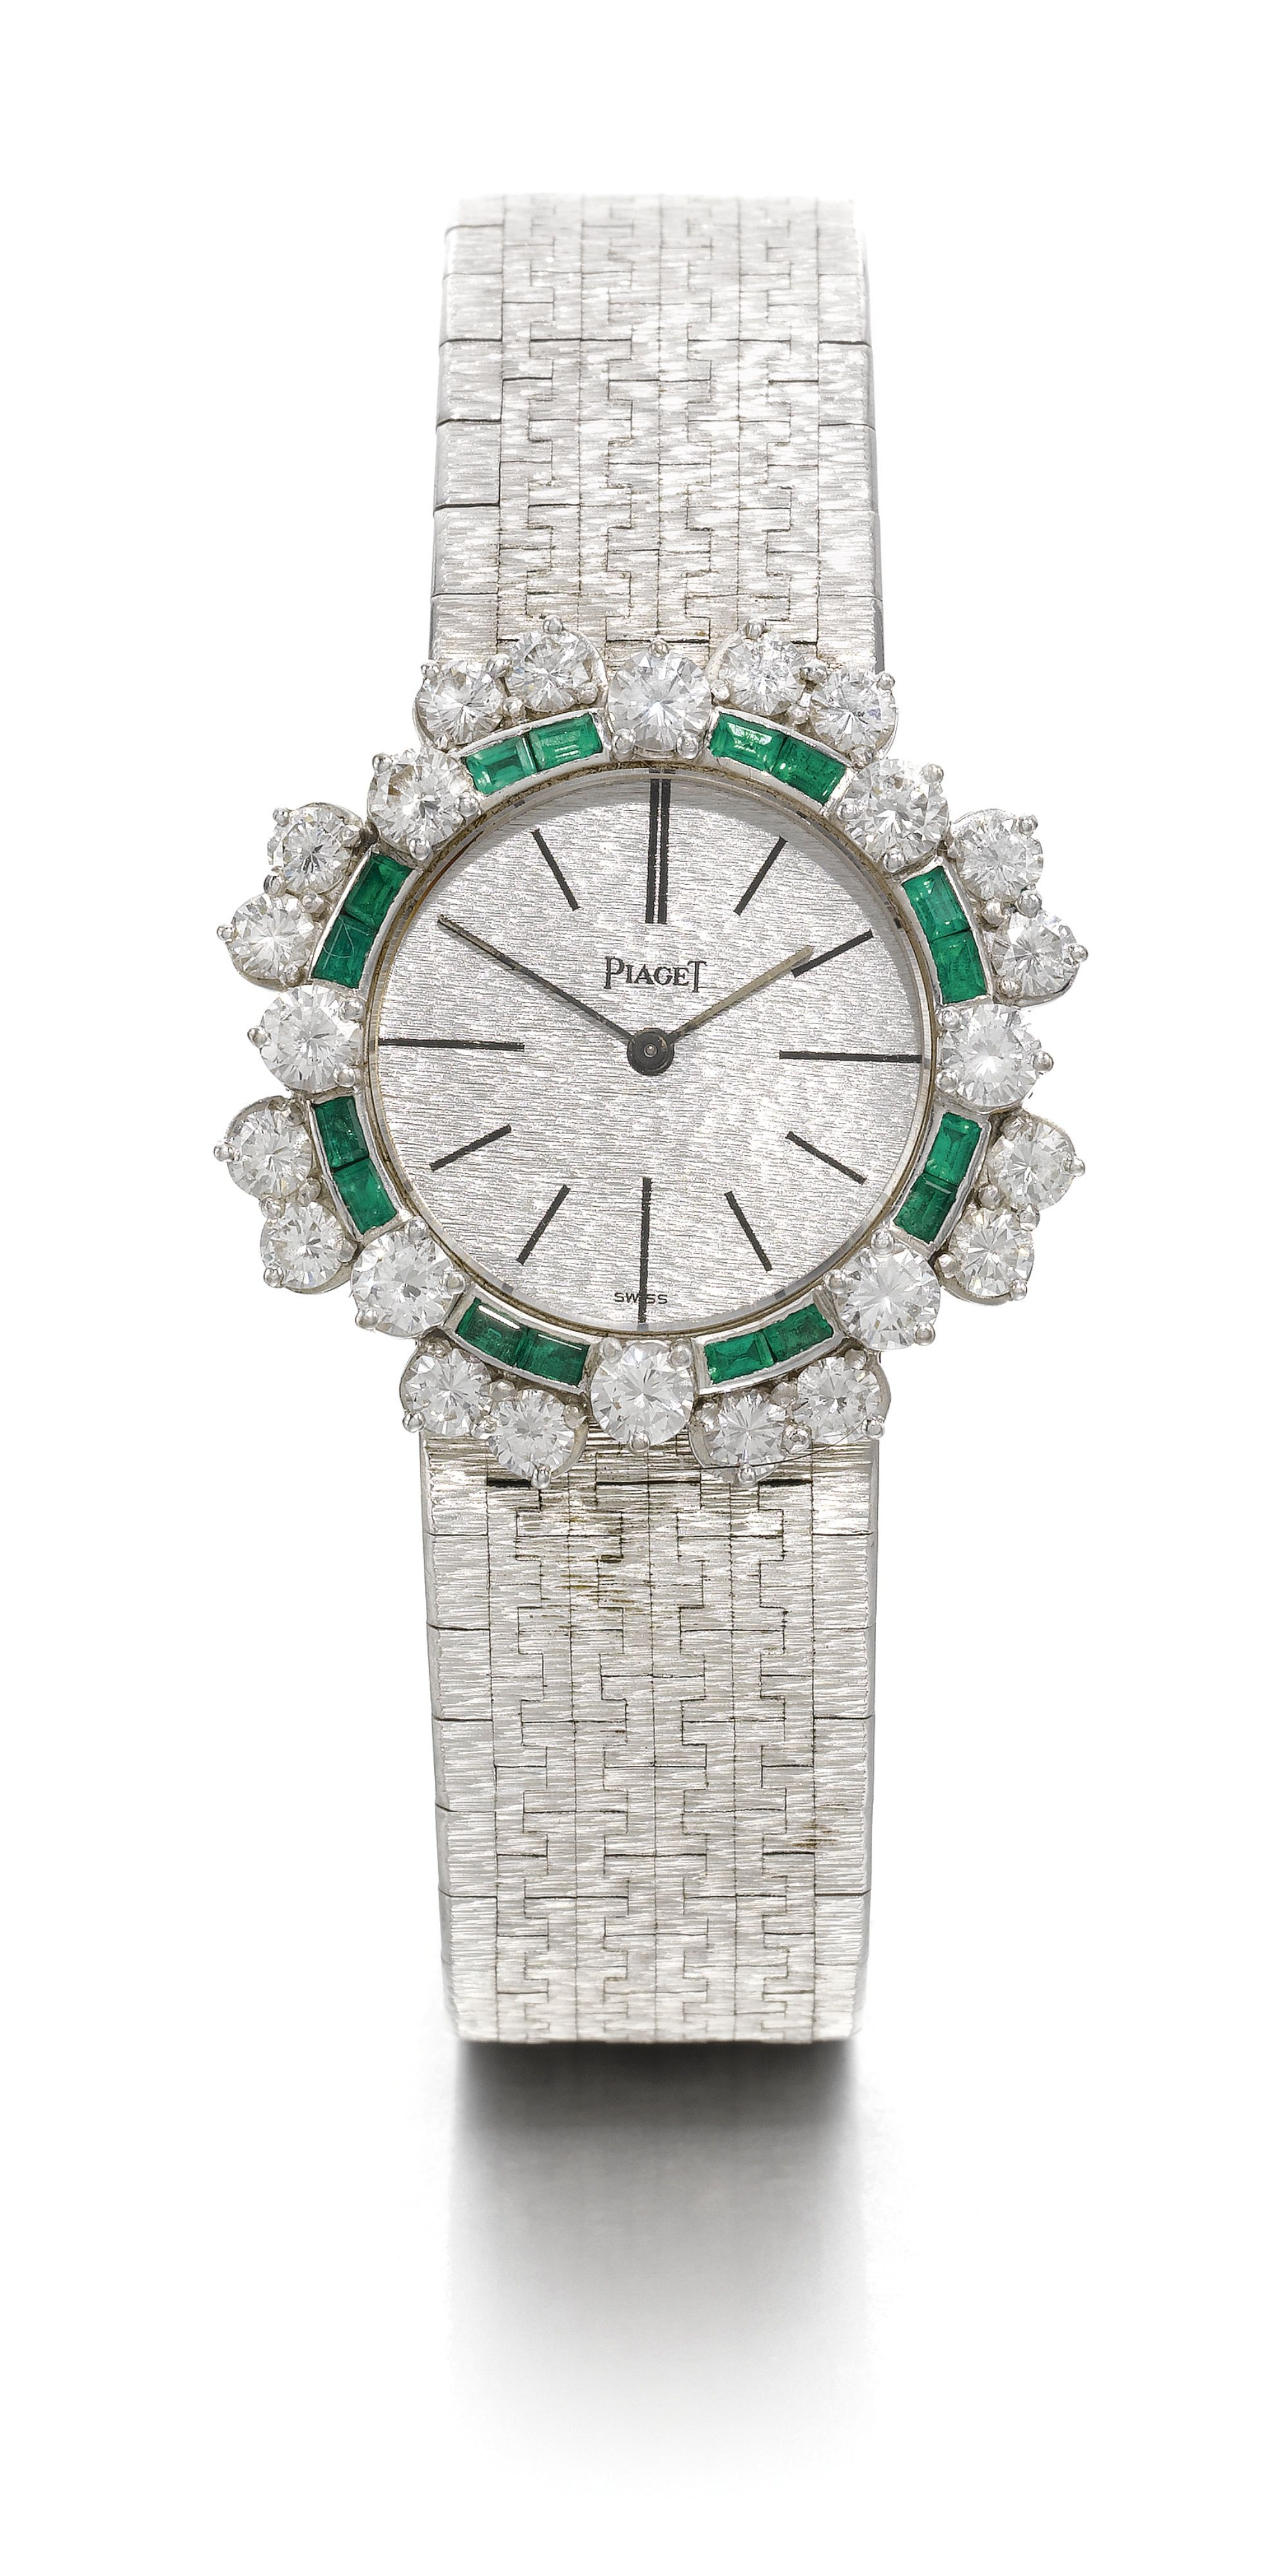 8f4e7138a86 PIAGET LADY S 18K WHITE GOLD EMERALD AND DIAMOND-SET BRACELET WATCH CIRCA  ...